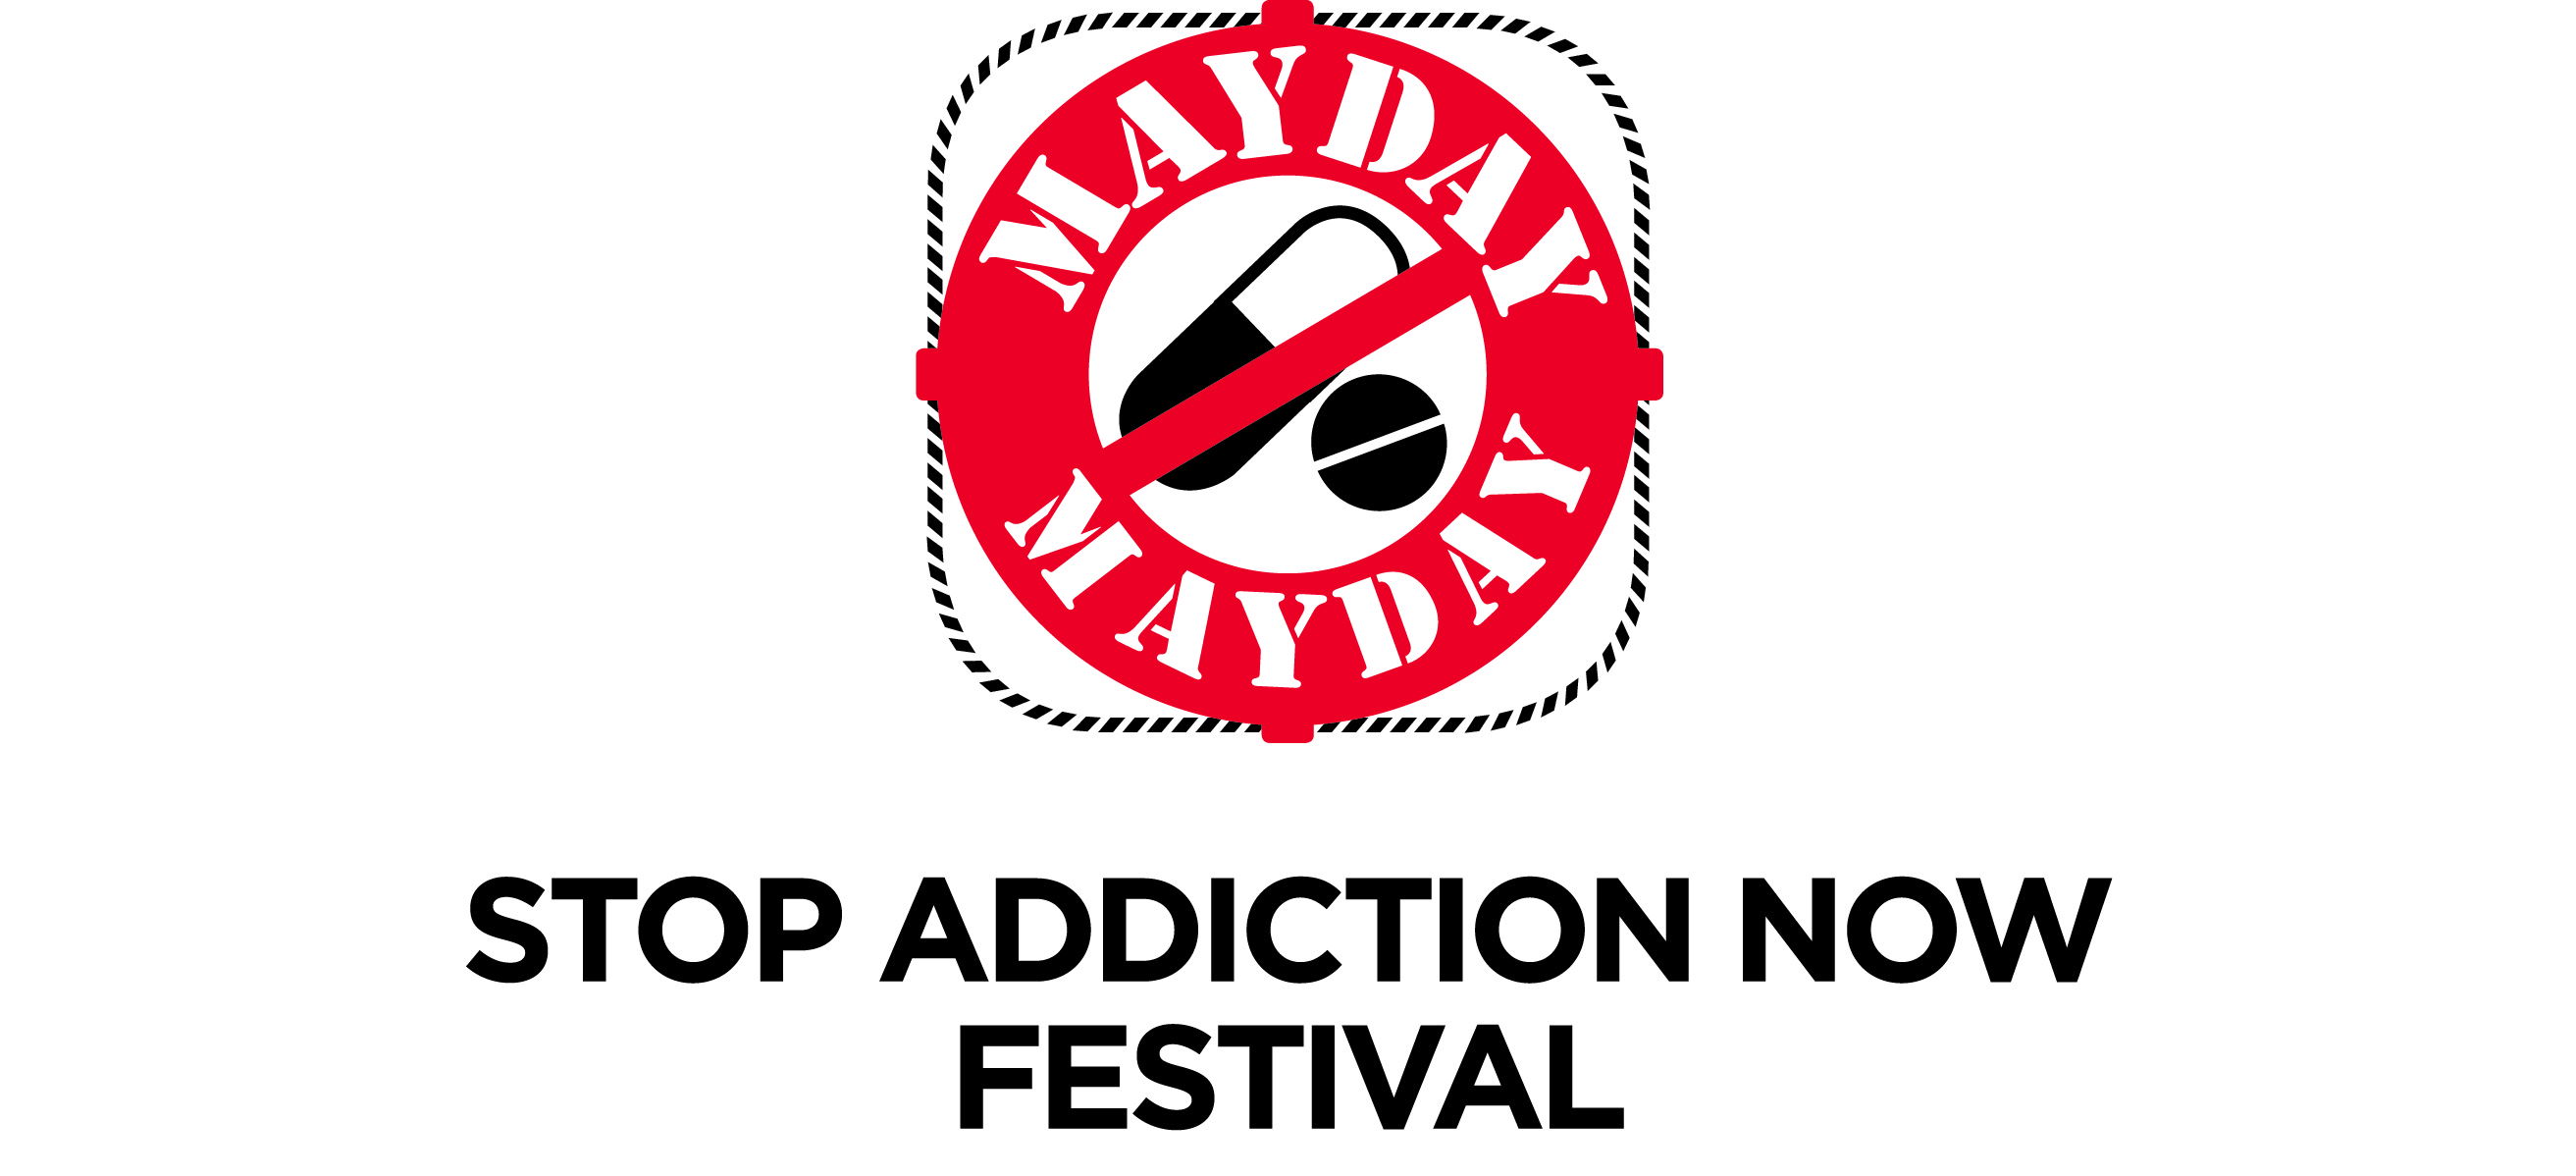 Mayday 2018 Festival Stop Addiction Now